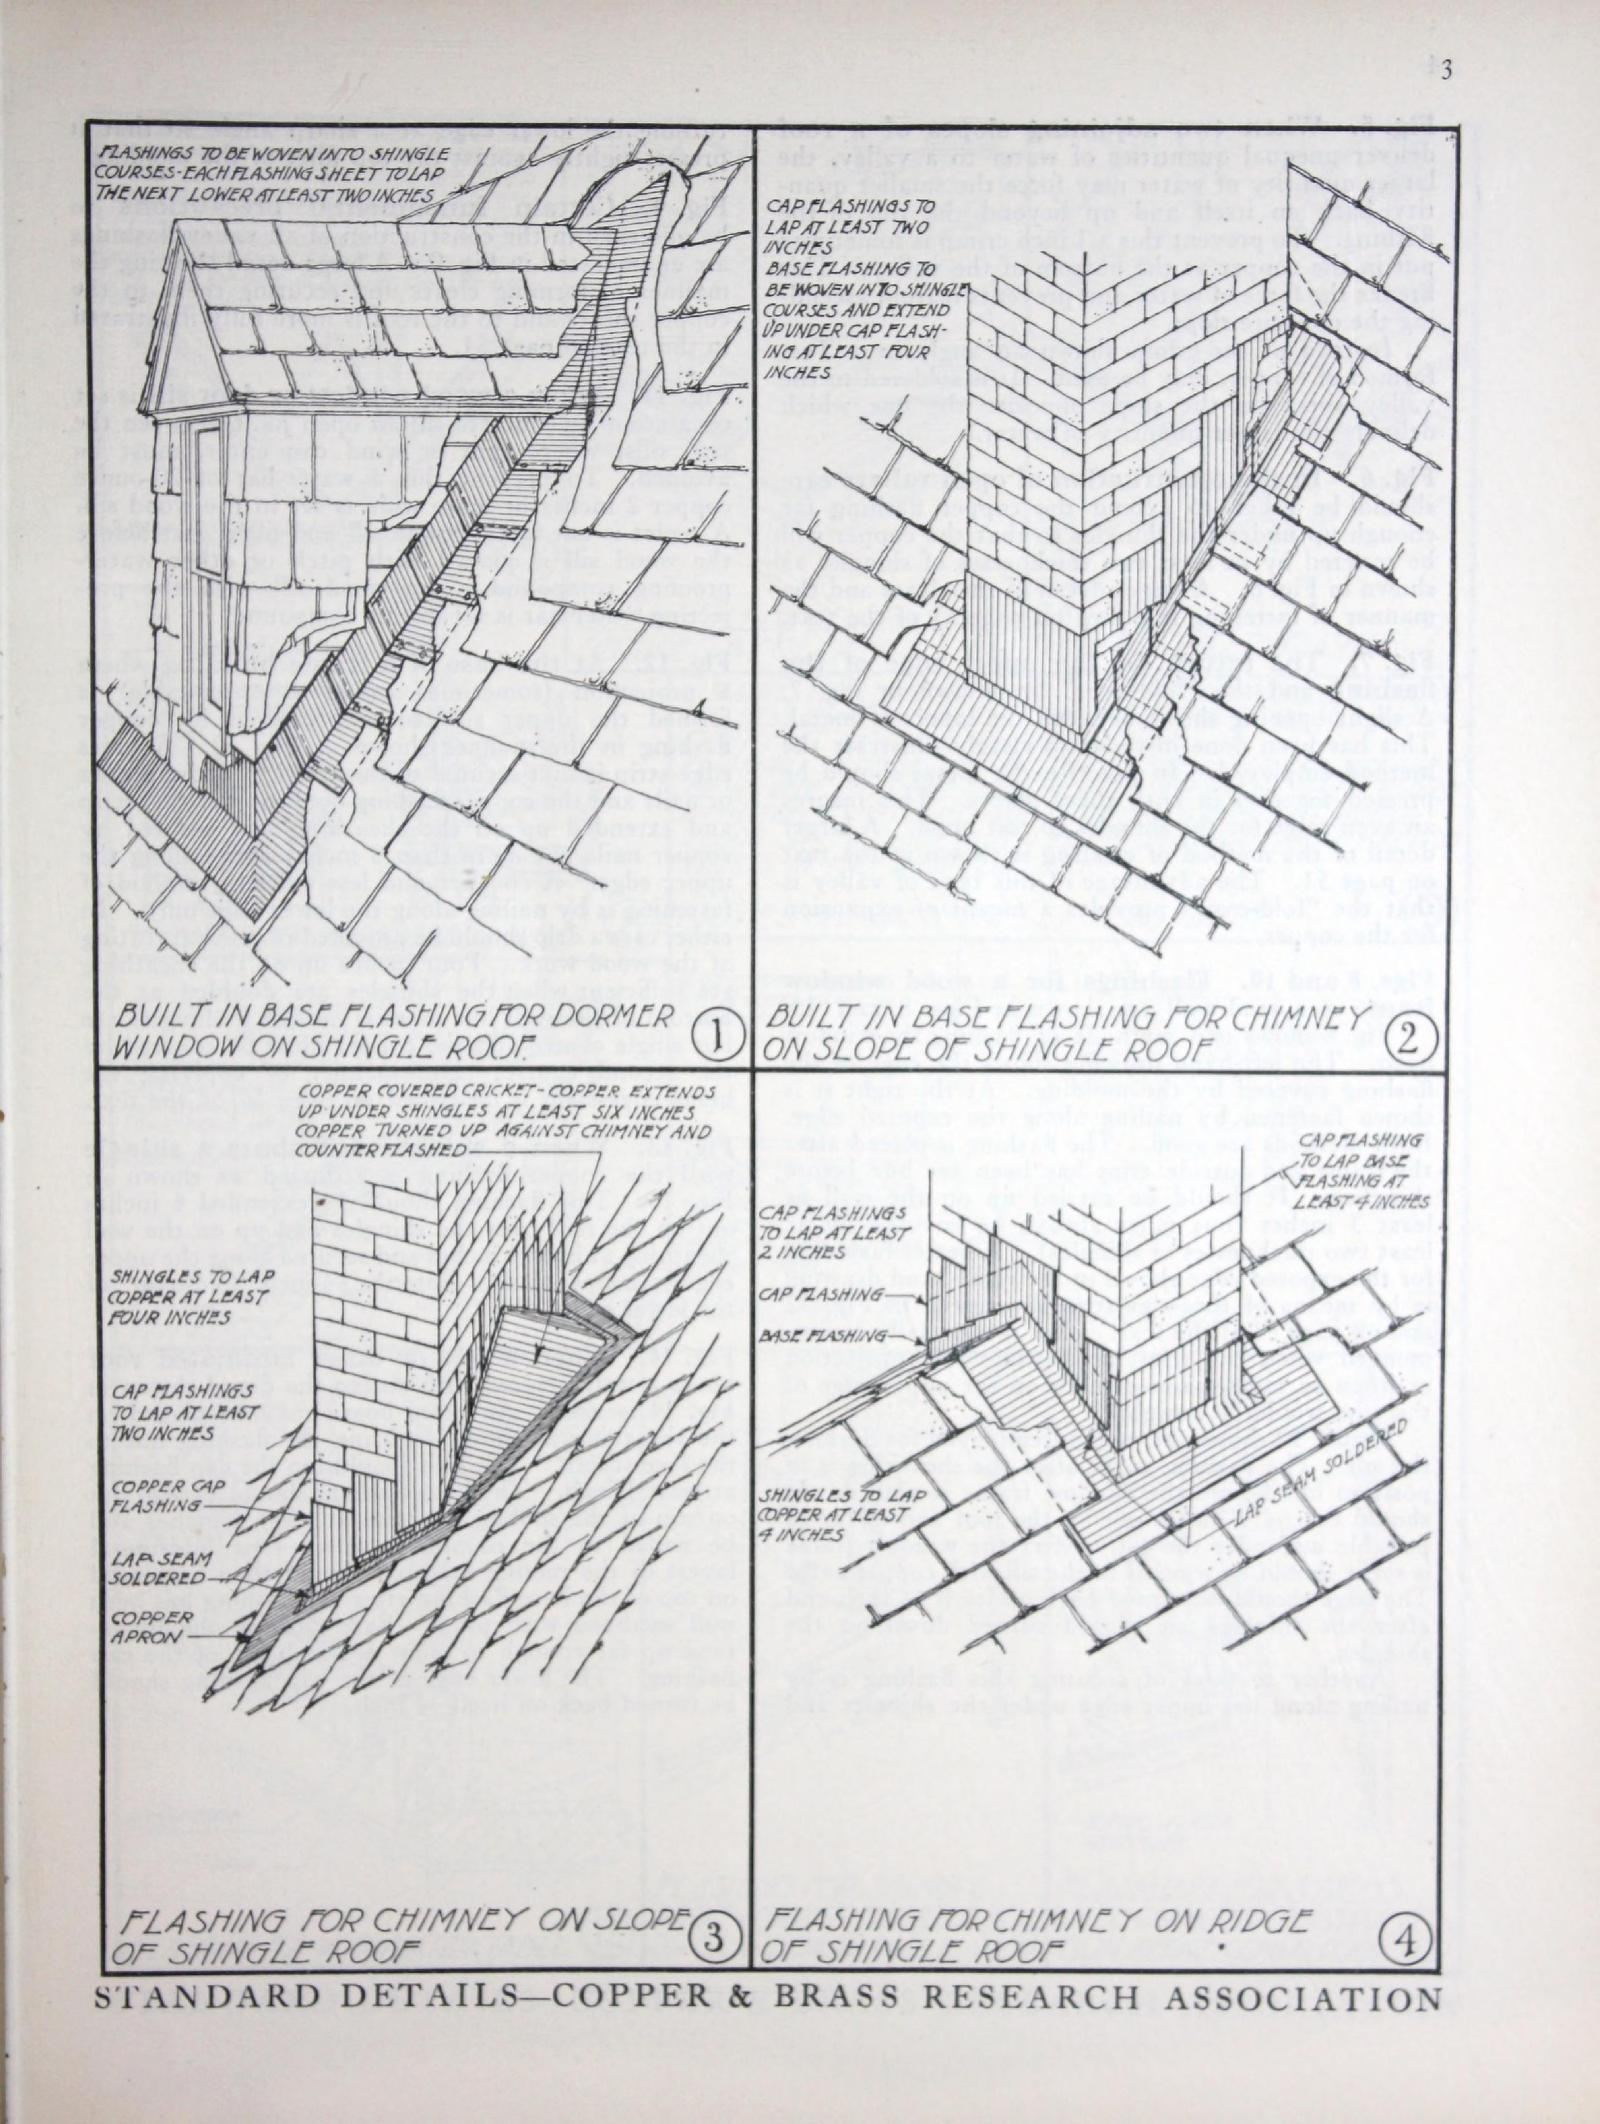 Copper Flashings - Copper And Brass Research Association - Page 3.jpg